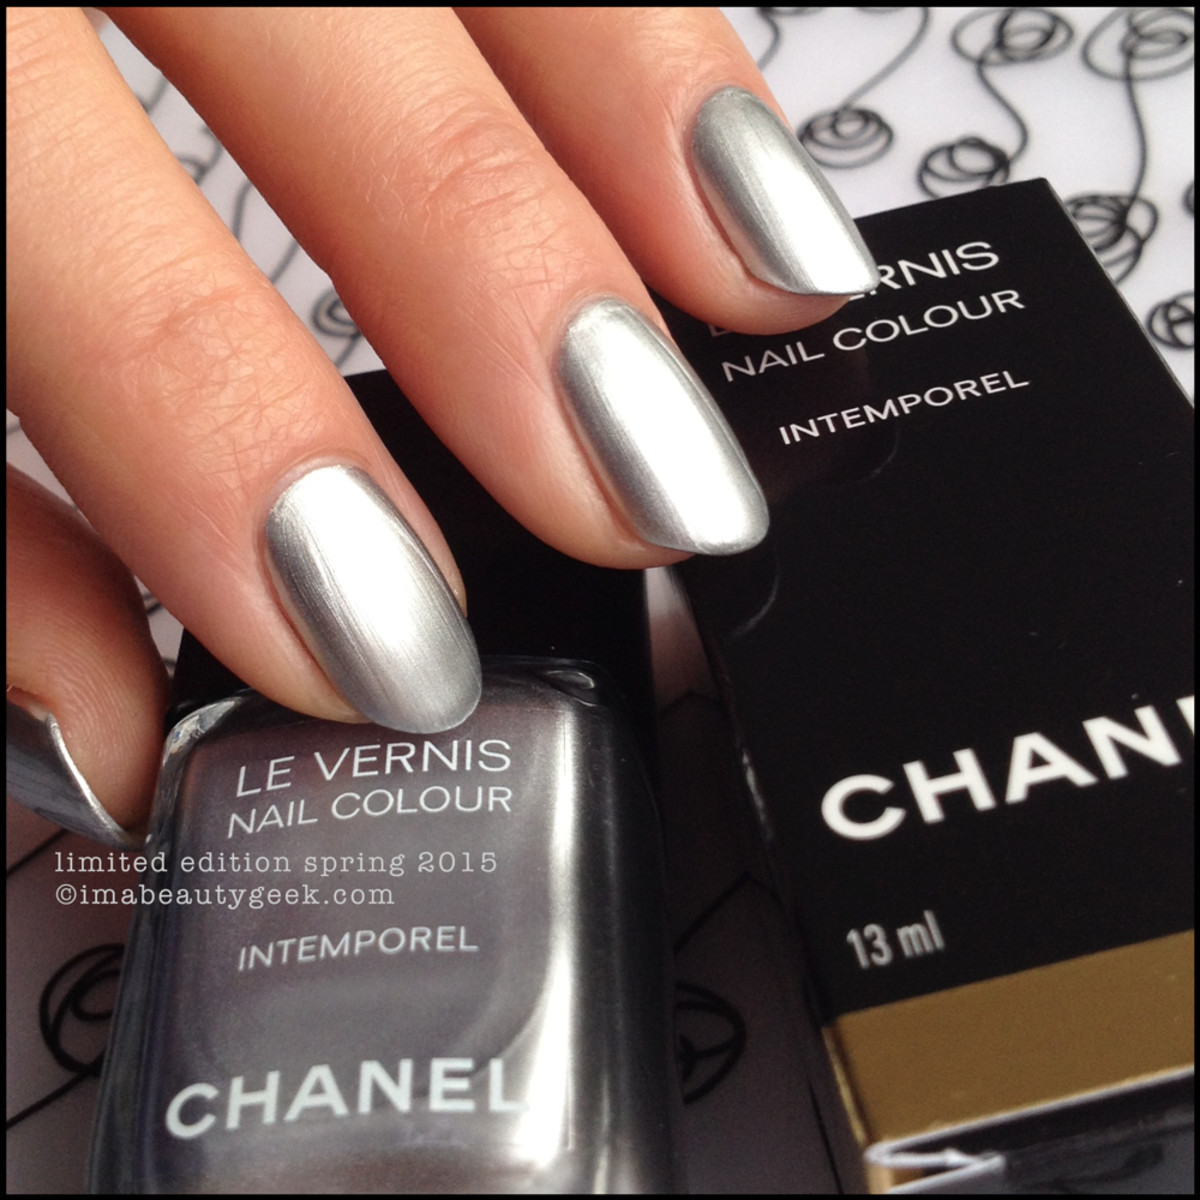 Chanel Intemporel Le Vernis Limited Edition Spring 2015